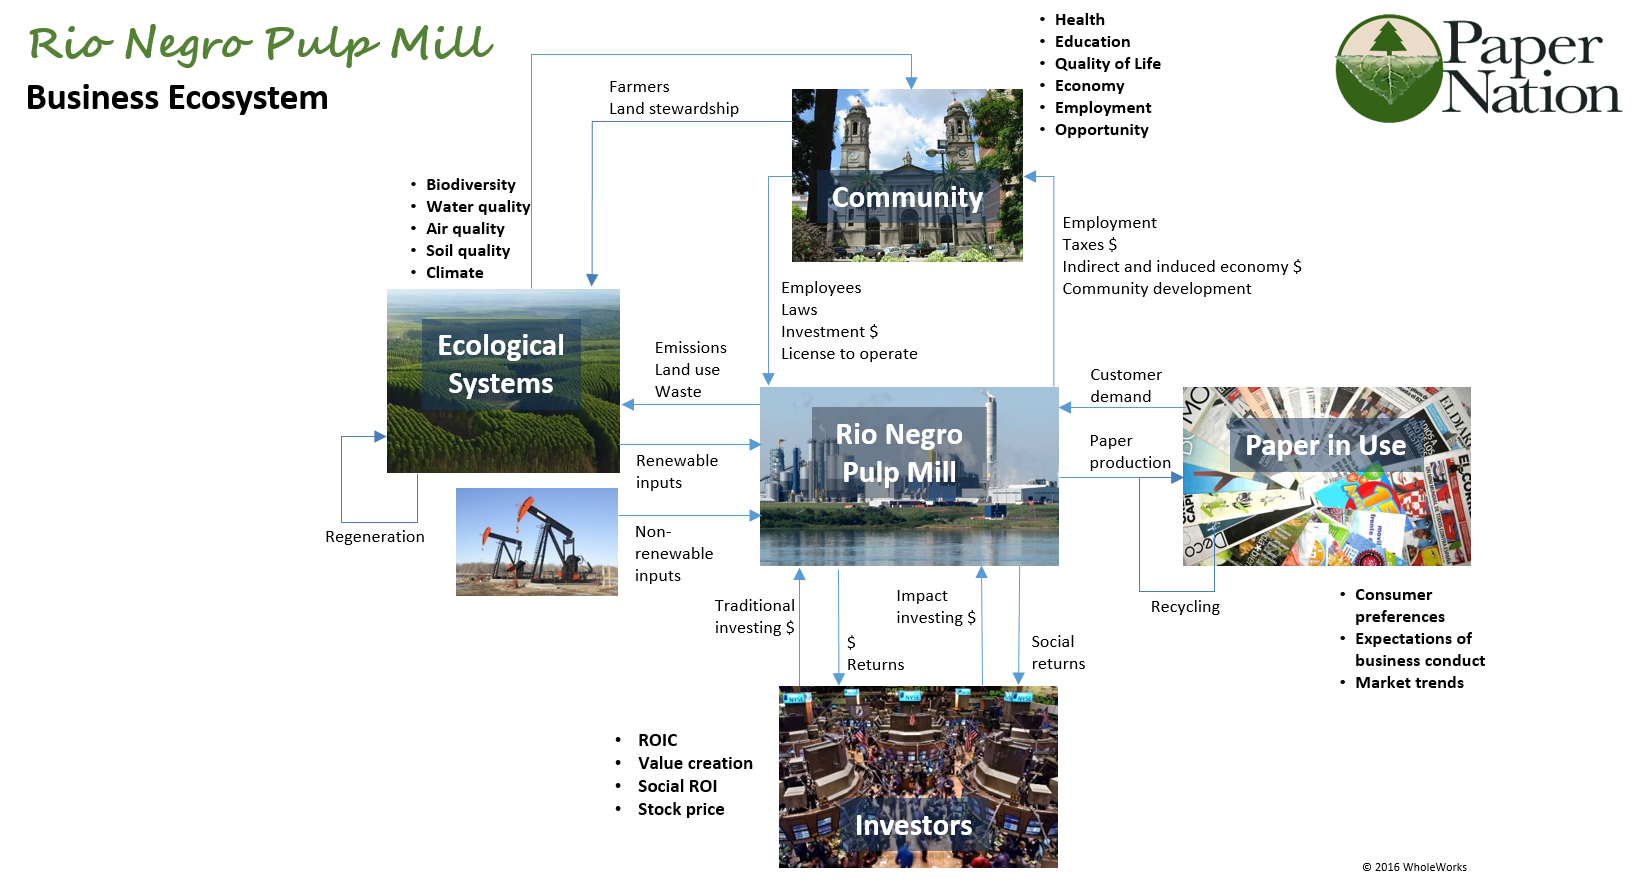 Rio Negro Pulp Mill Business Ecosystem